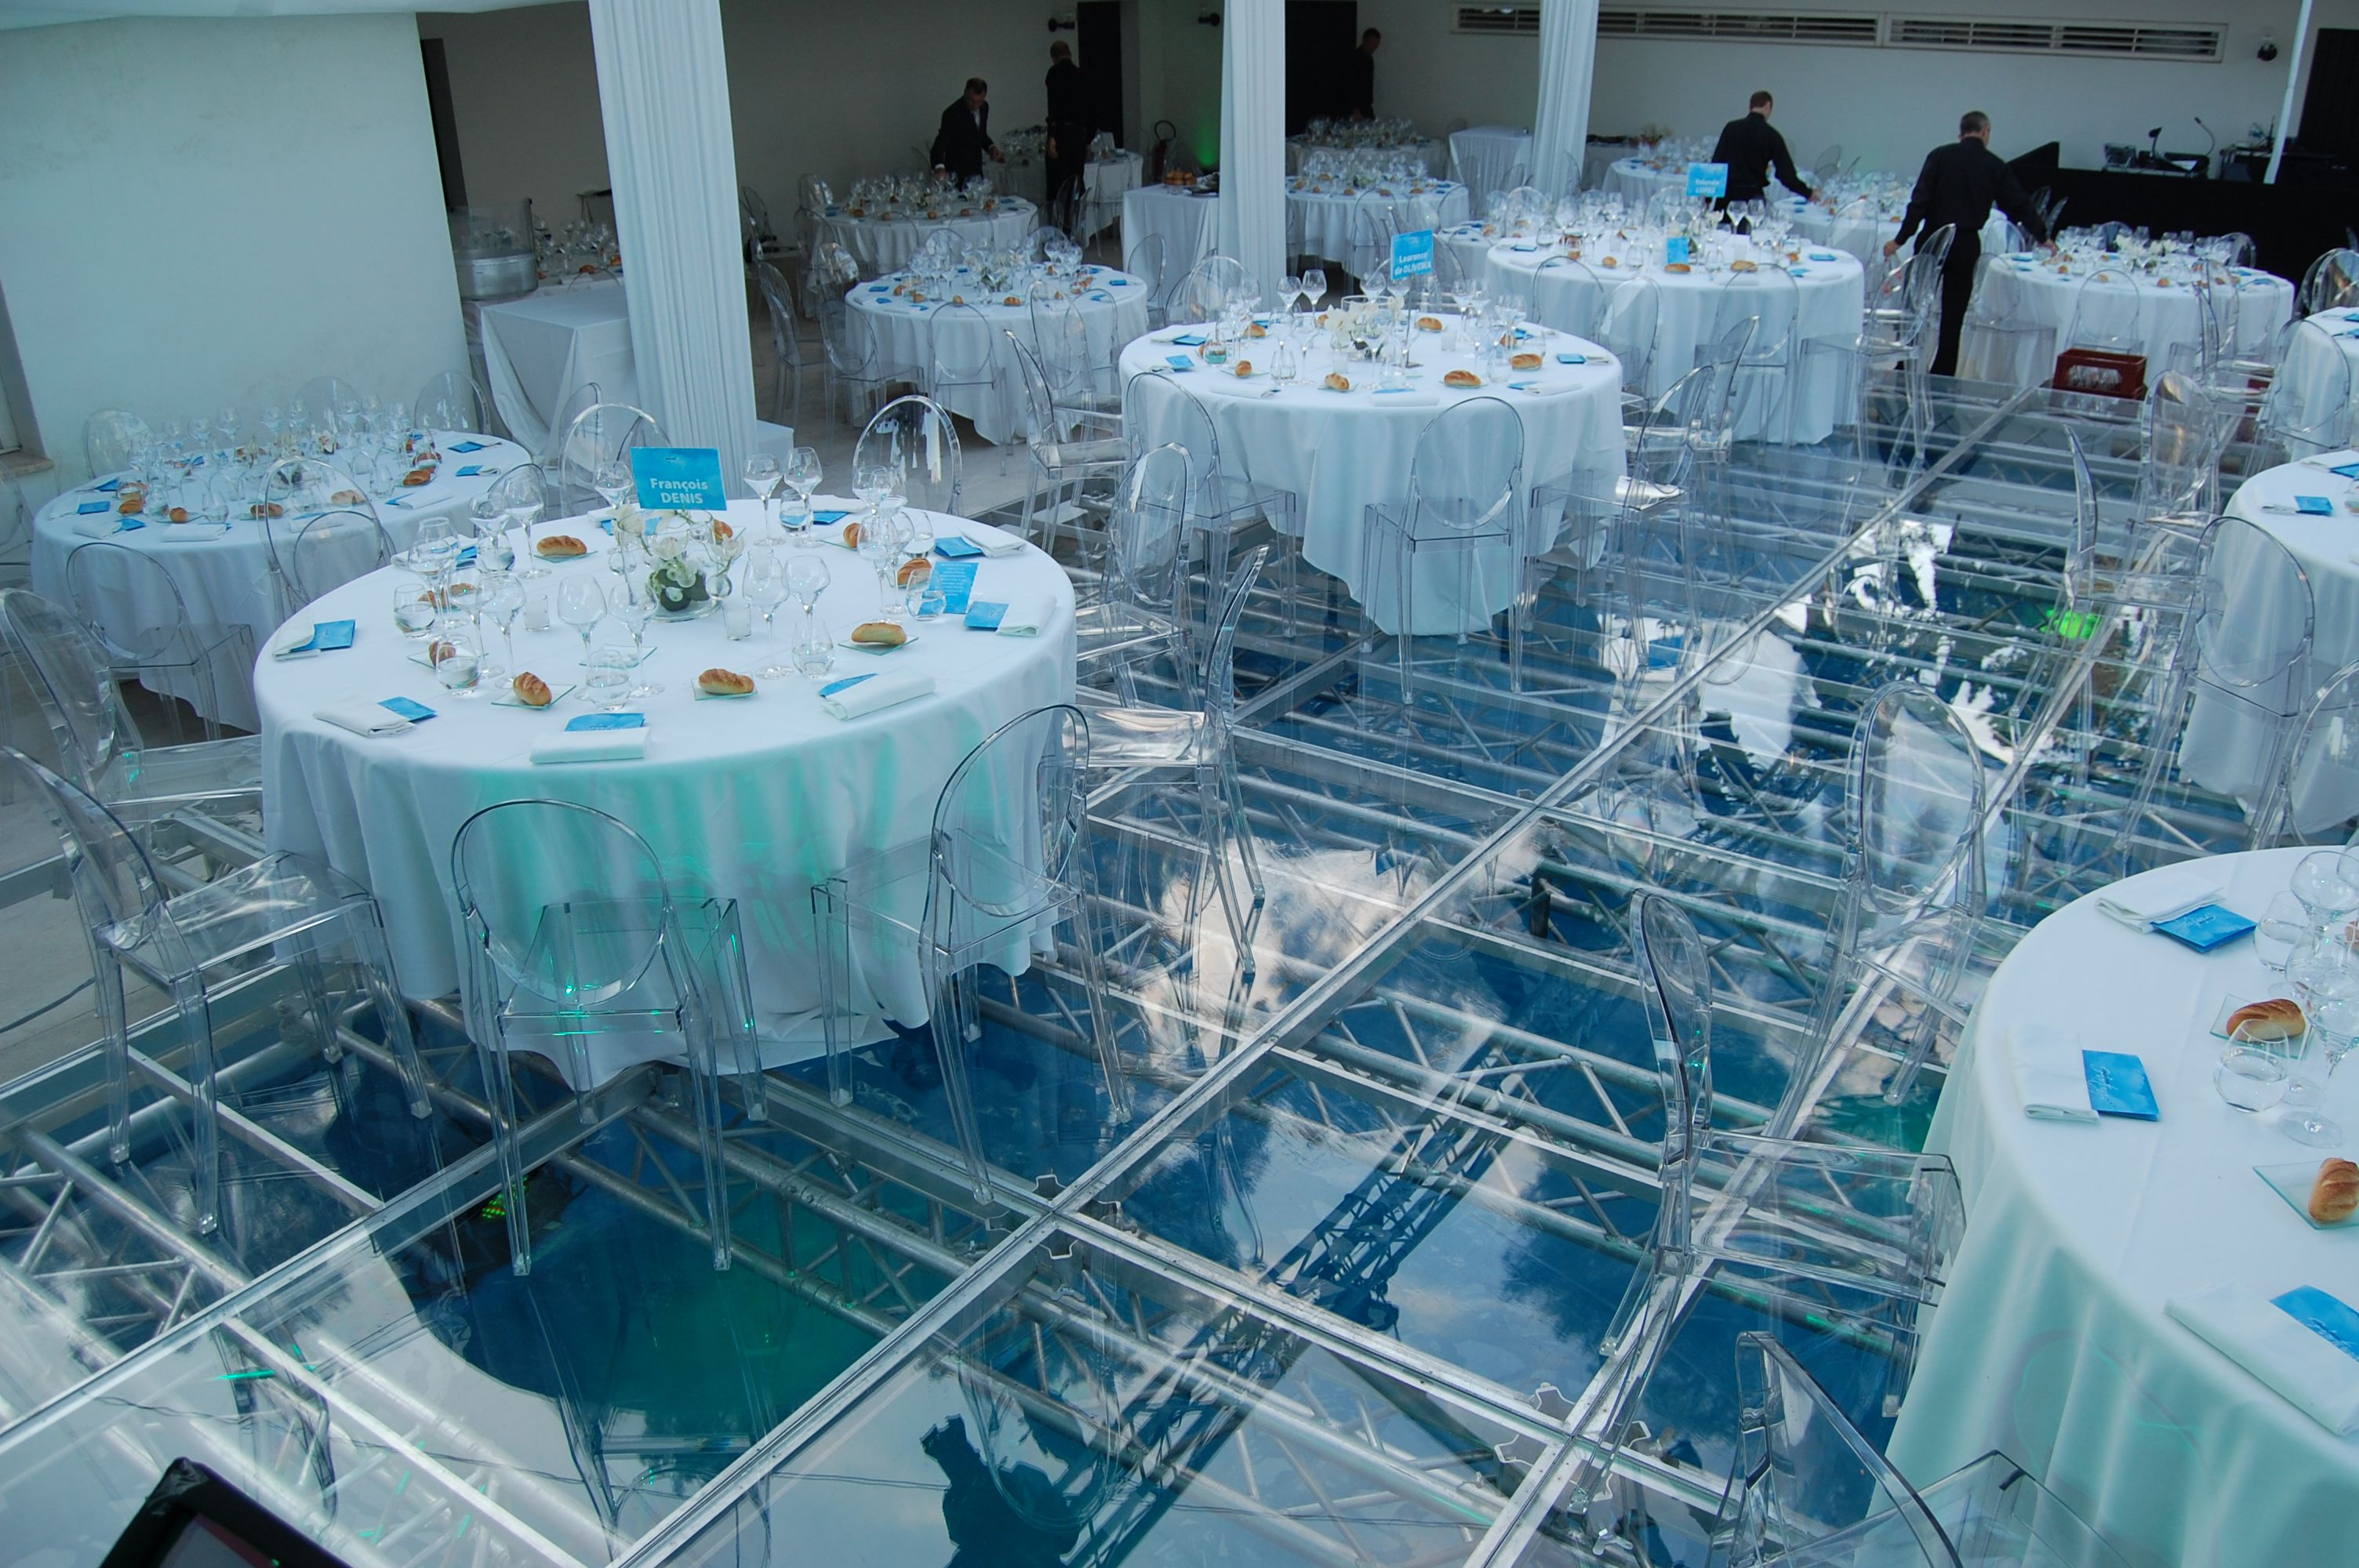 Is a swimming pool or a dance floor with adams adams for Pool floor